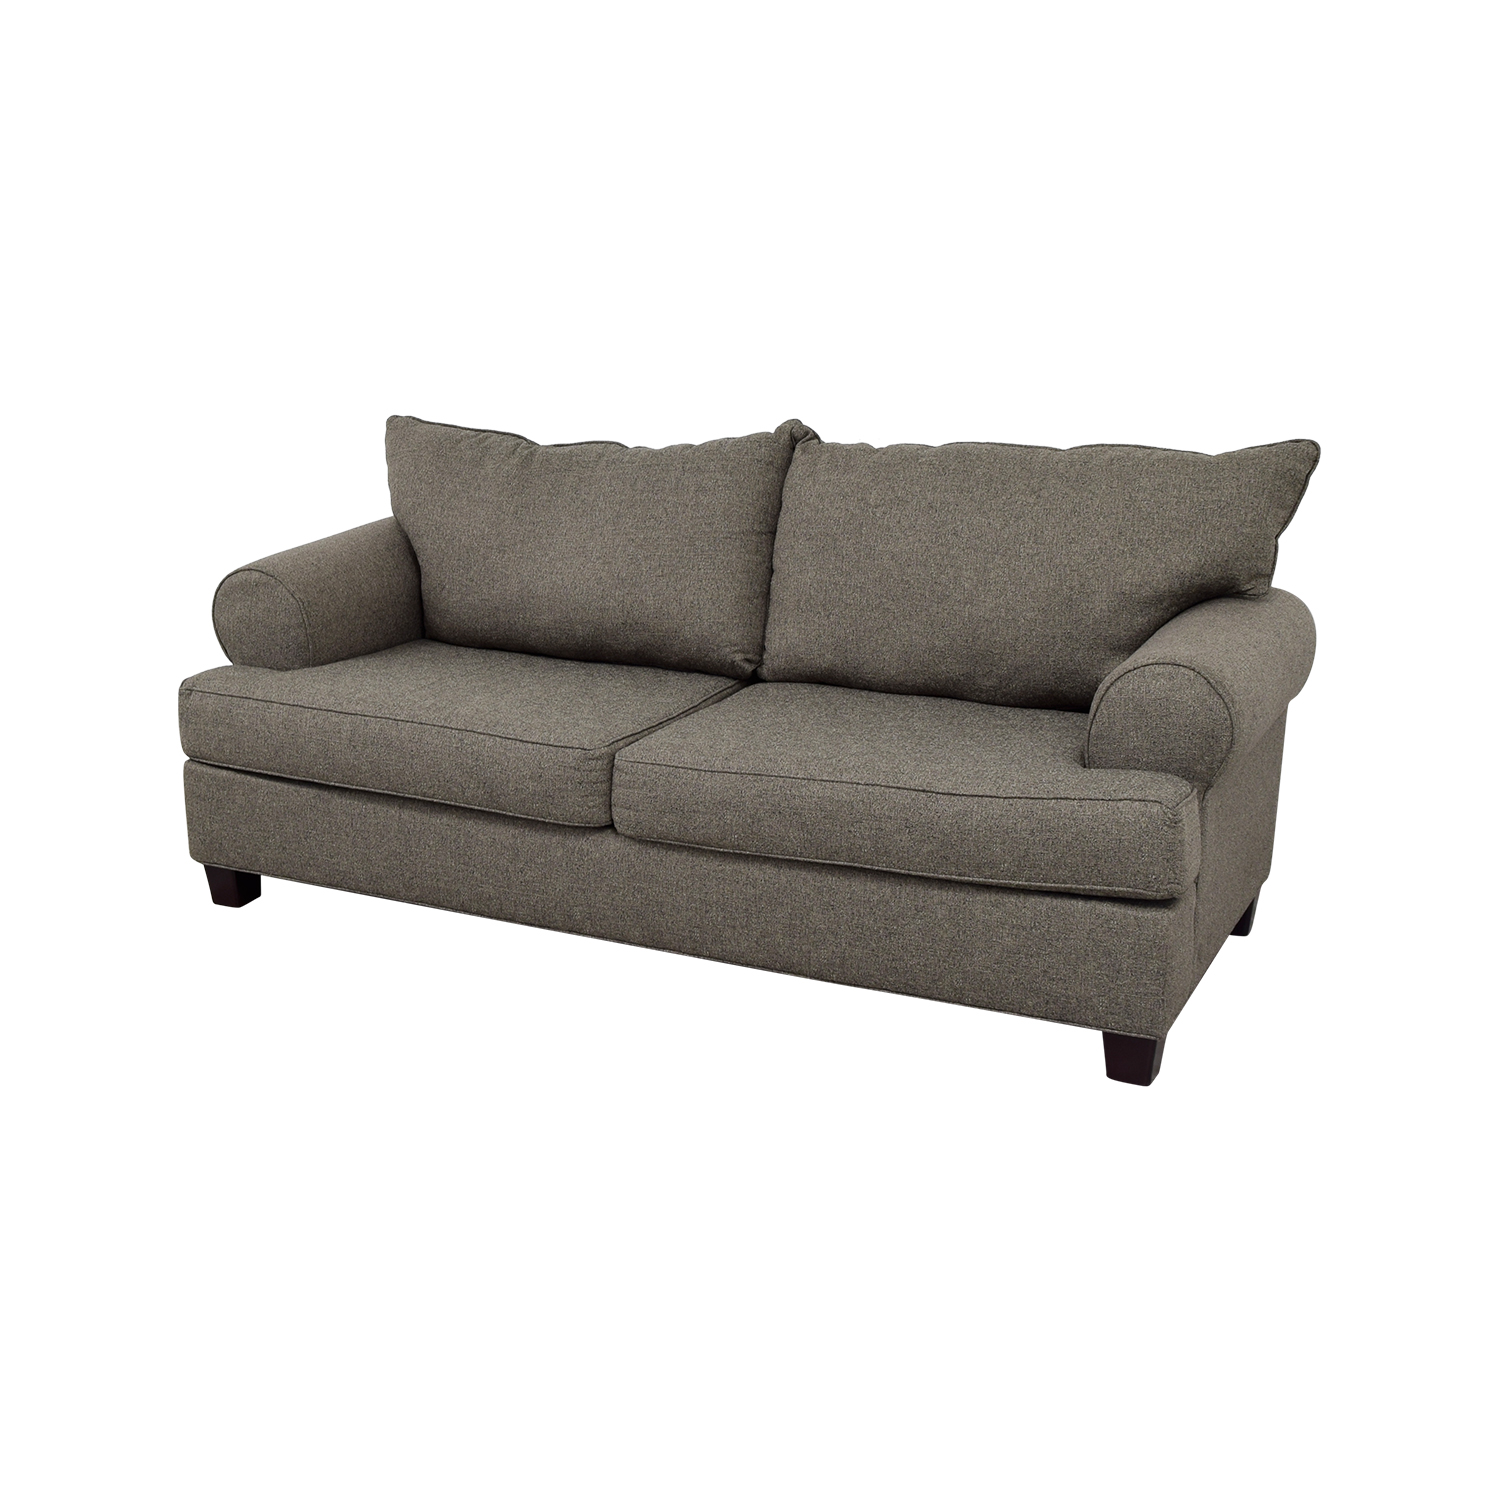 75 Off Bob S Furniture Bob S Furniture Tweed Sofa Sofas